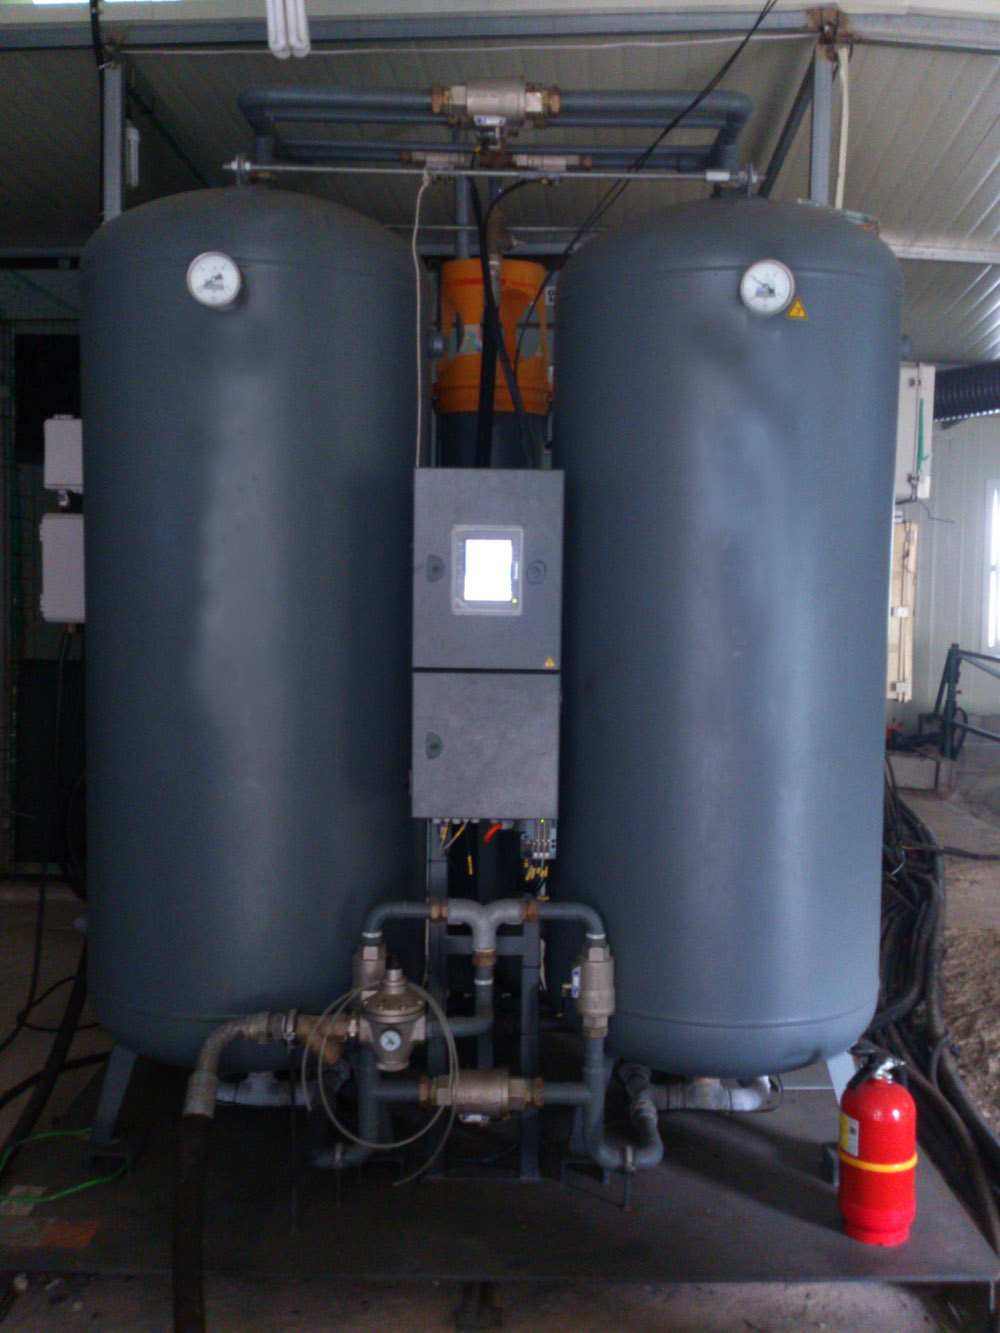 nitrogen gas tanks